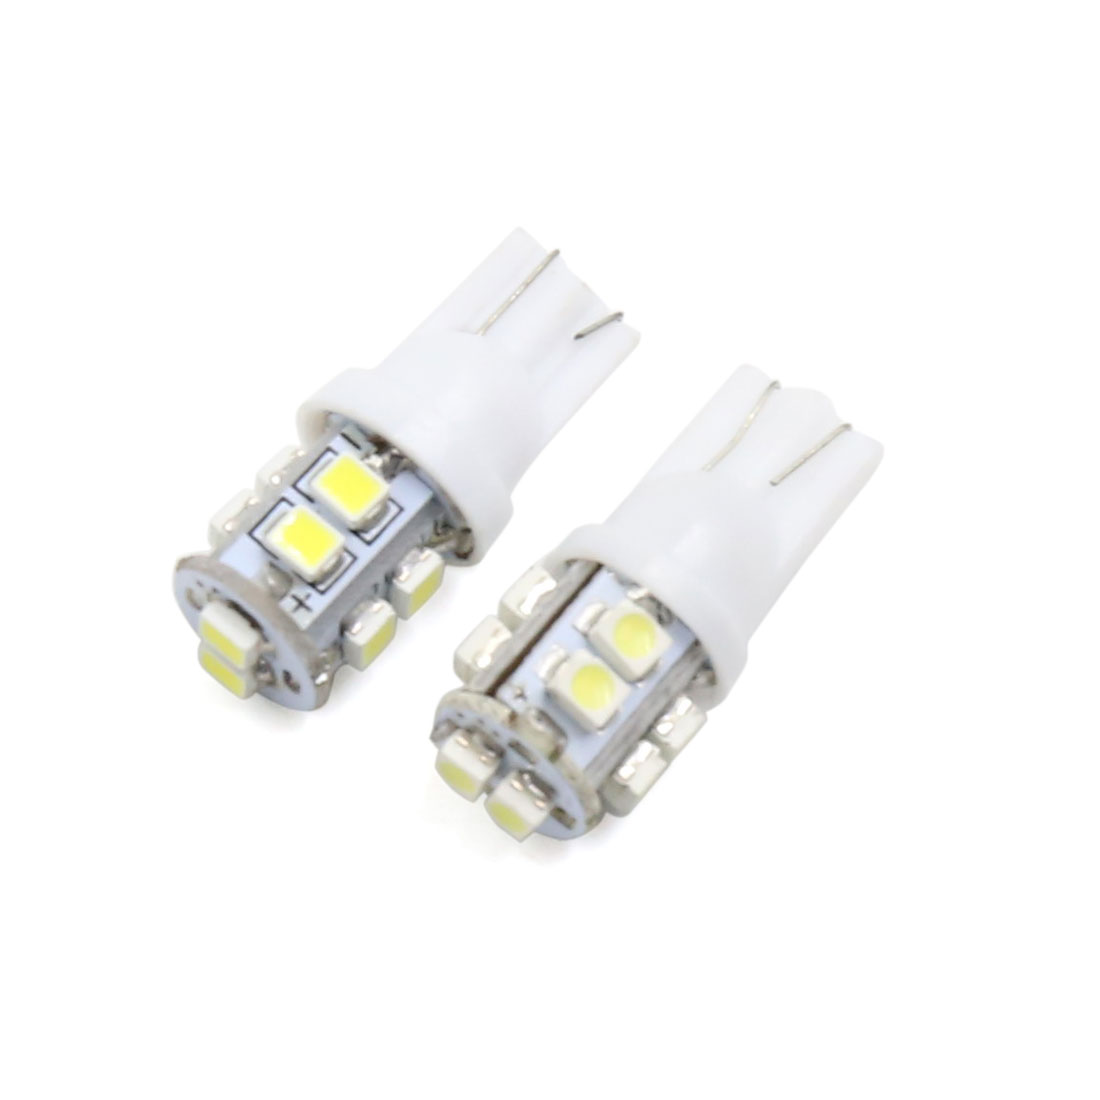 2Pcs White T10 10 Led Car Dashboard Light Lamp Interior W5W 2825 158 192 194